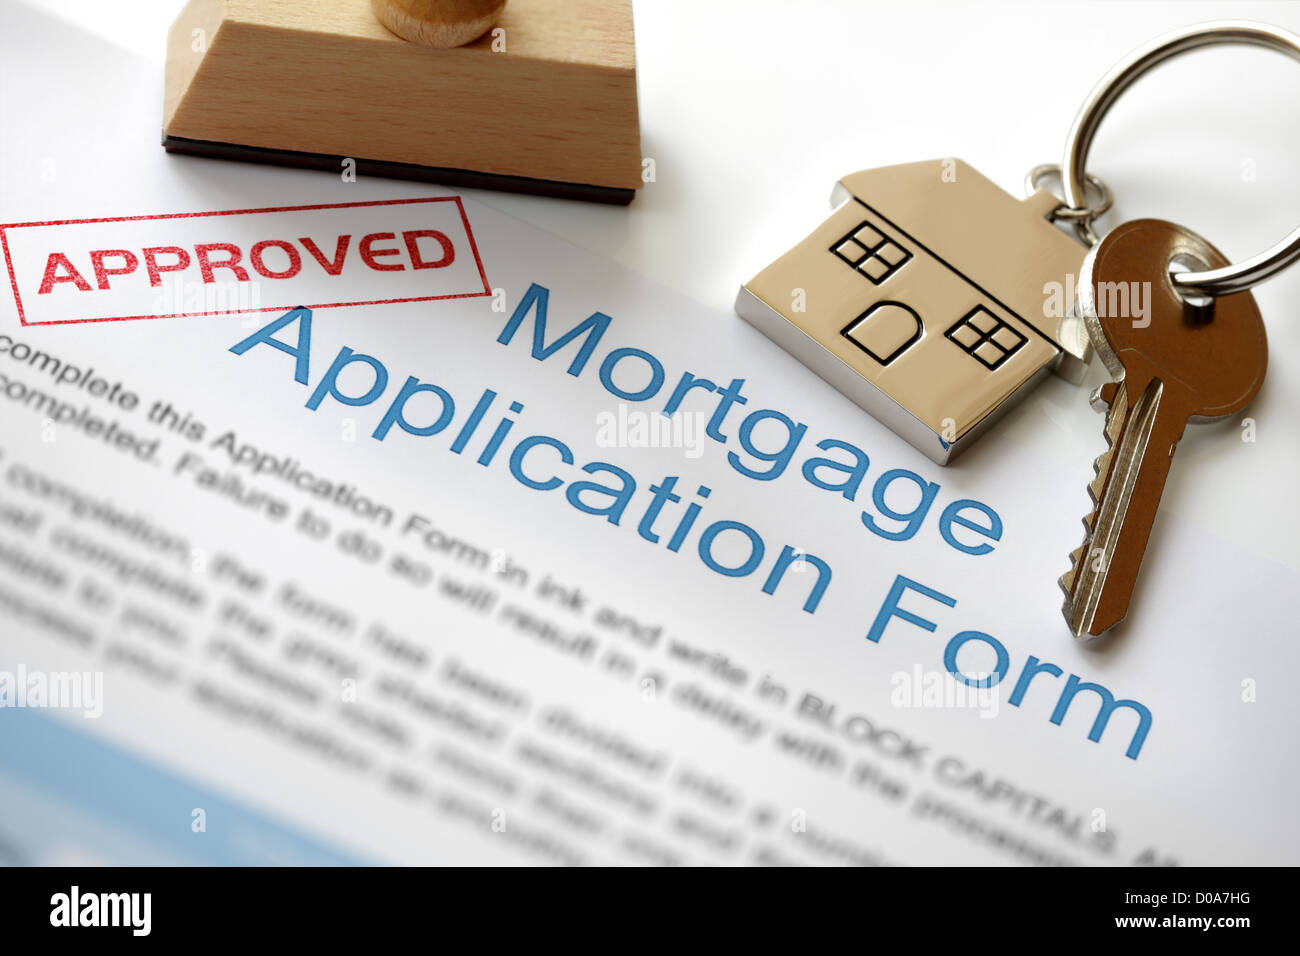 Approved mortgage application - Stock Image